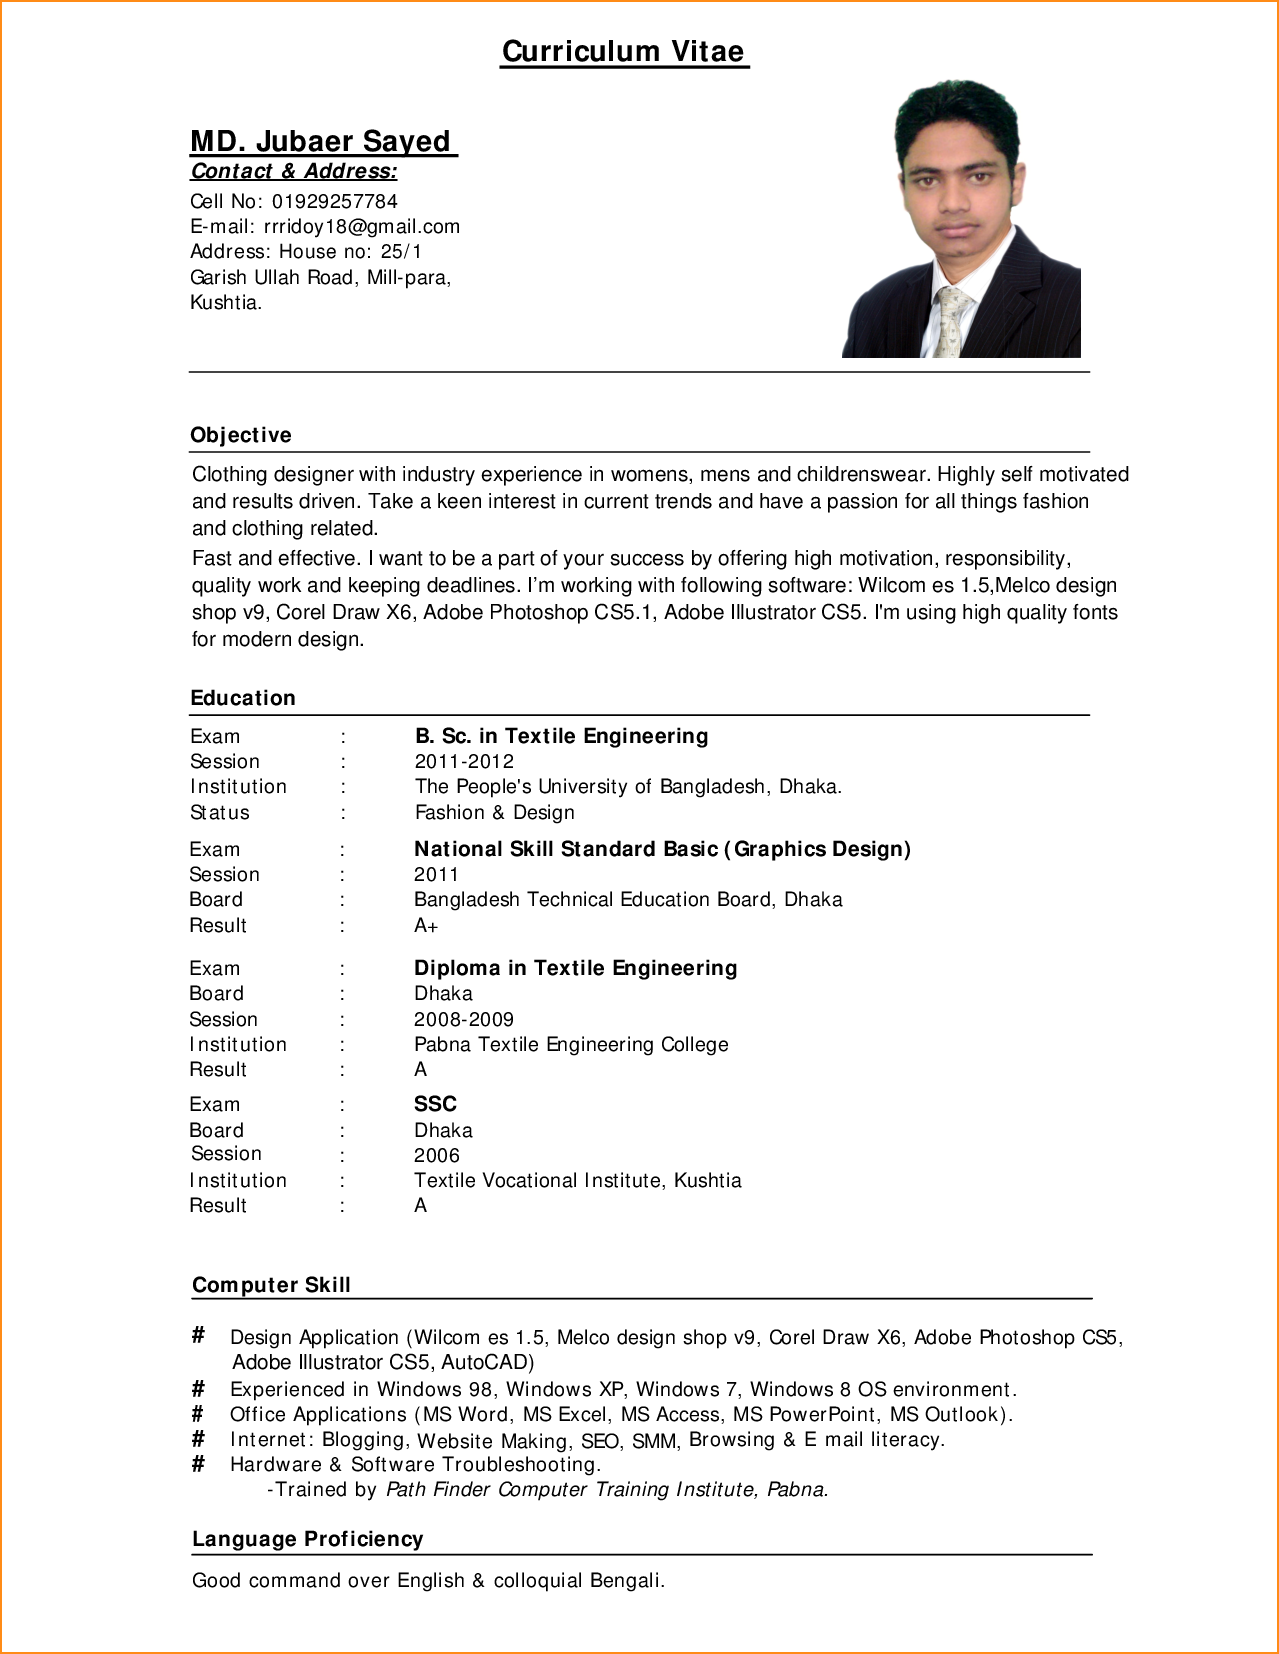 10 Sample Cv For Job Application Pdf Basic Job Appication Letter Sample Cv For Job Standard Cv Format Cv Format Cv Format For Job